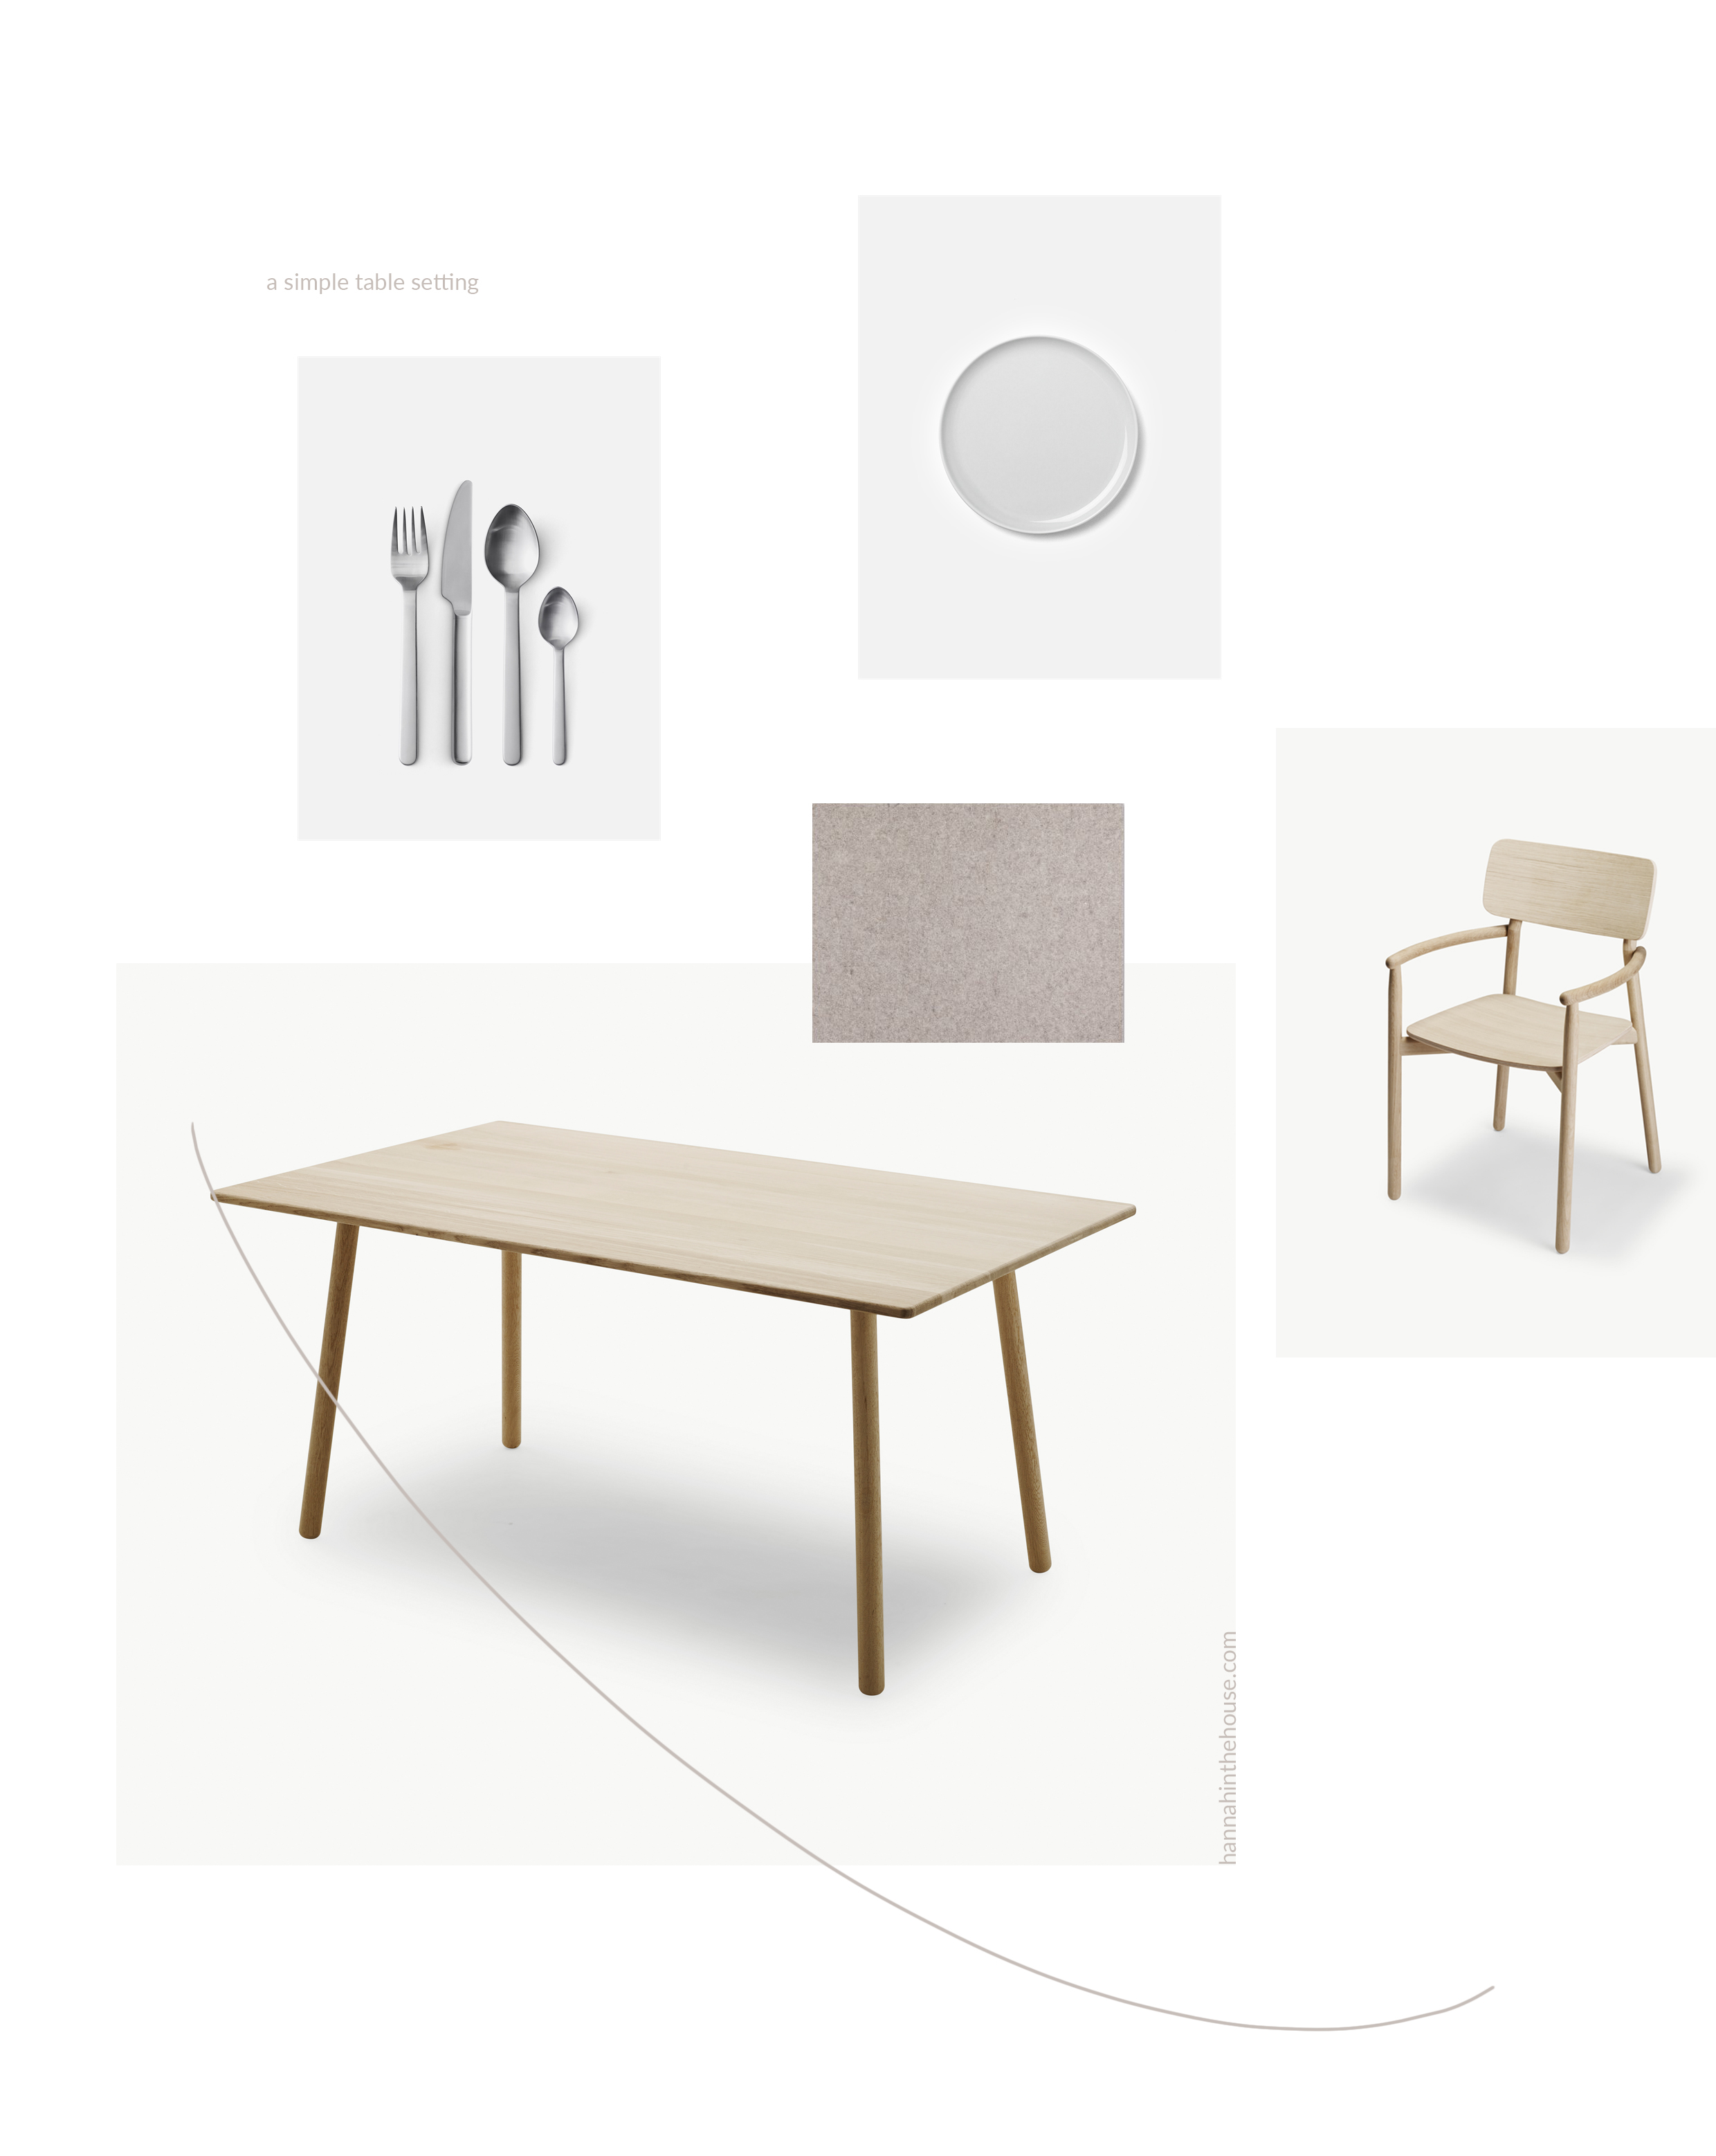 Simple Scandinavian table setting